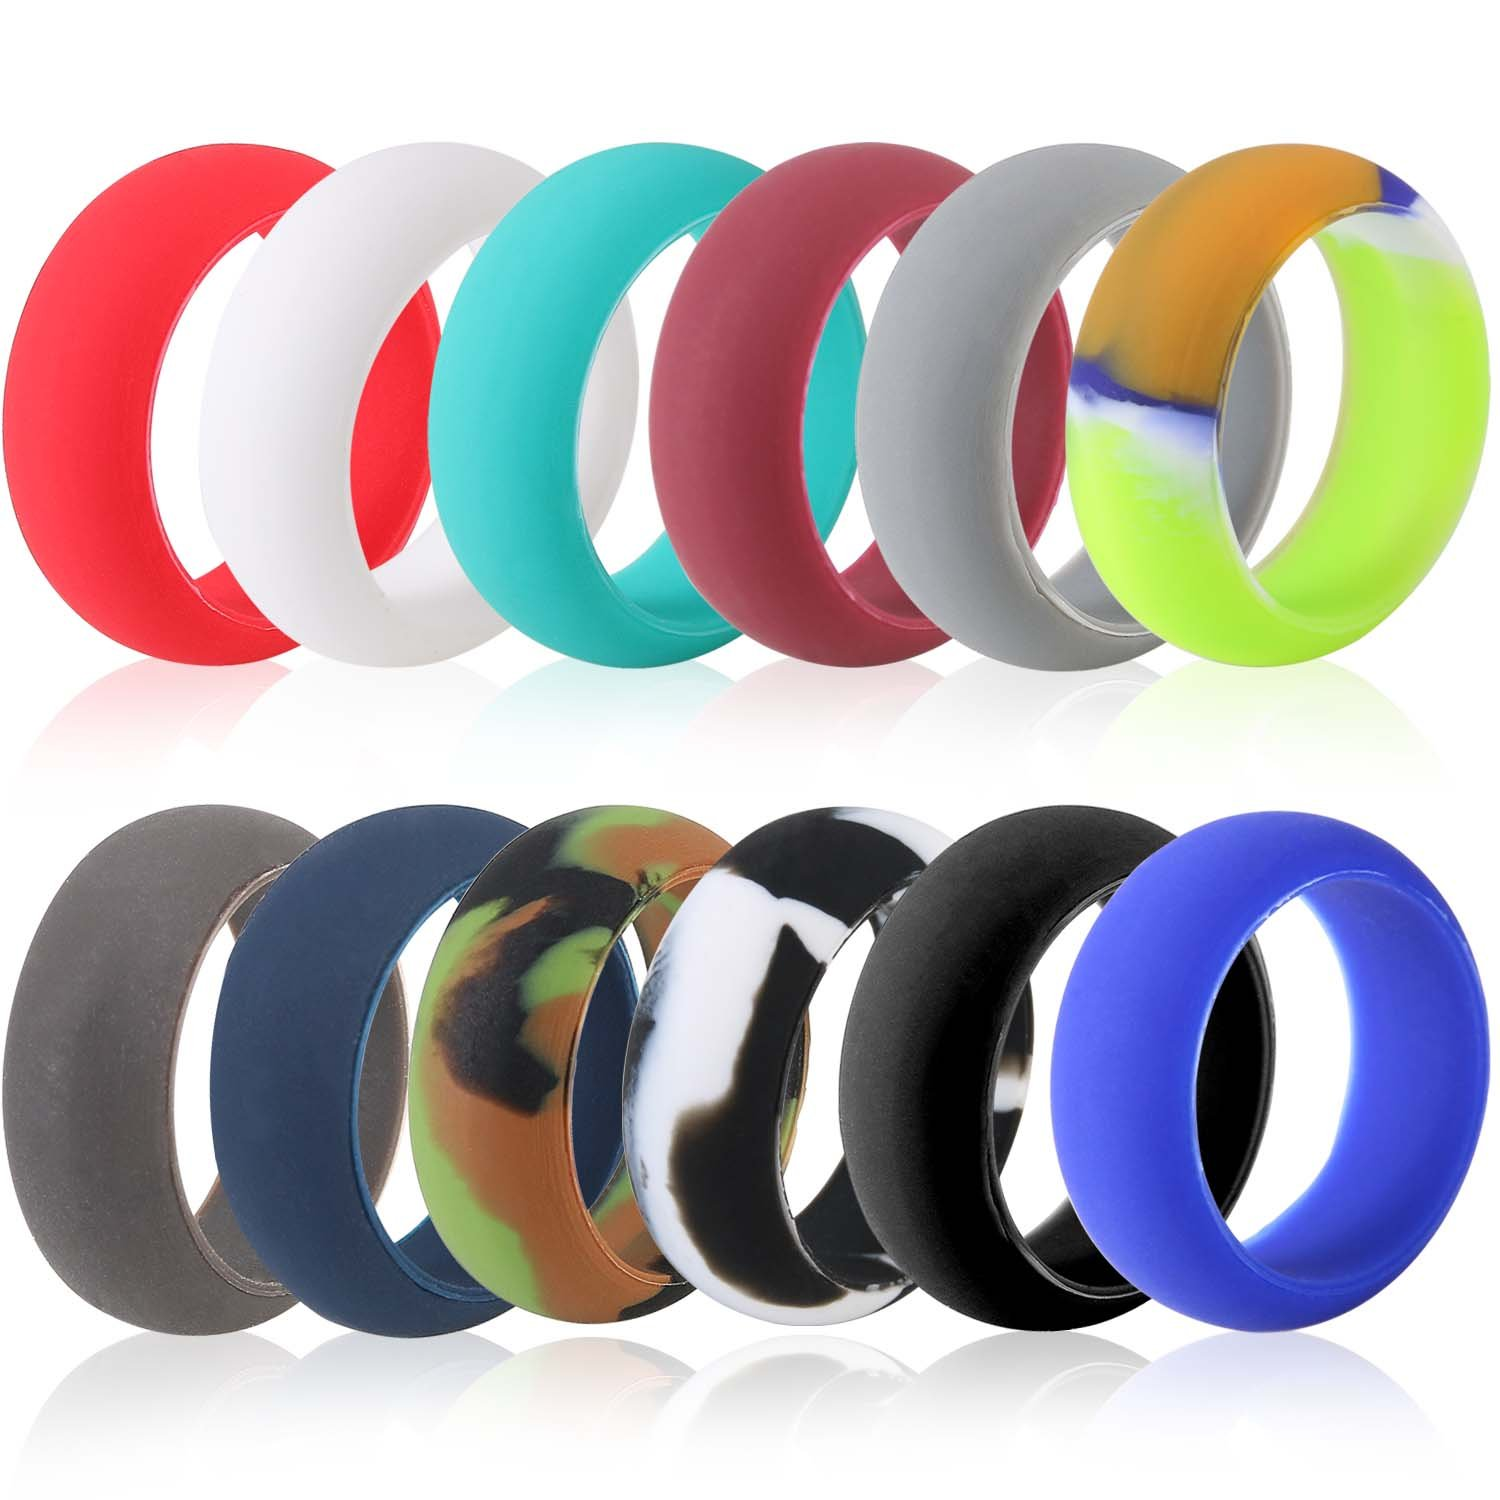 Best Value 12 Pack Silicone Wedding Ring, Premium Medical Grade Wedding-Bands, Outdoor Activities, Sports, Gym, Comfortable Fit & Skin Safe, Antibacterial For Men And Women (Men-Size-11)